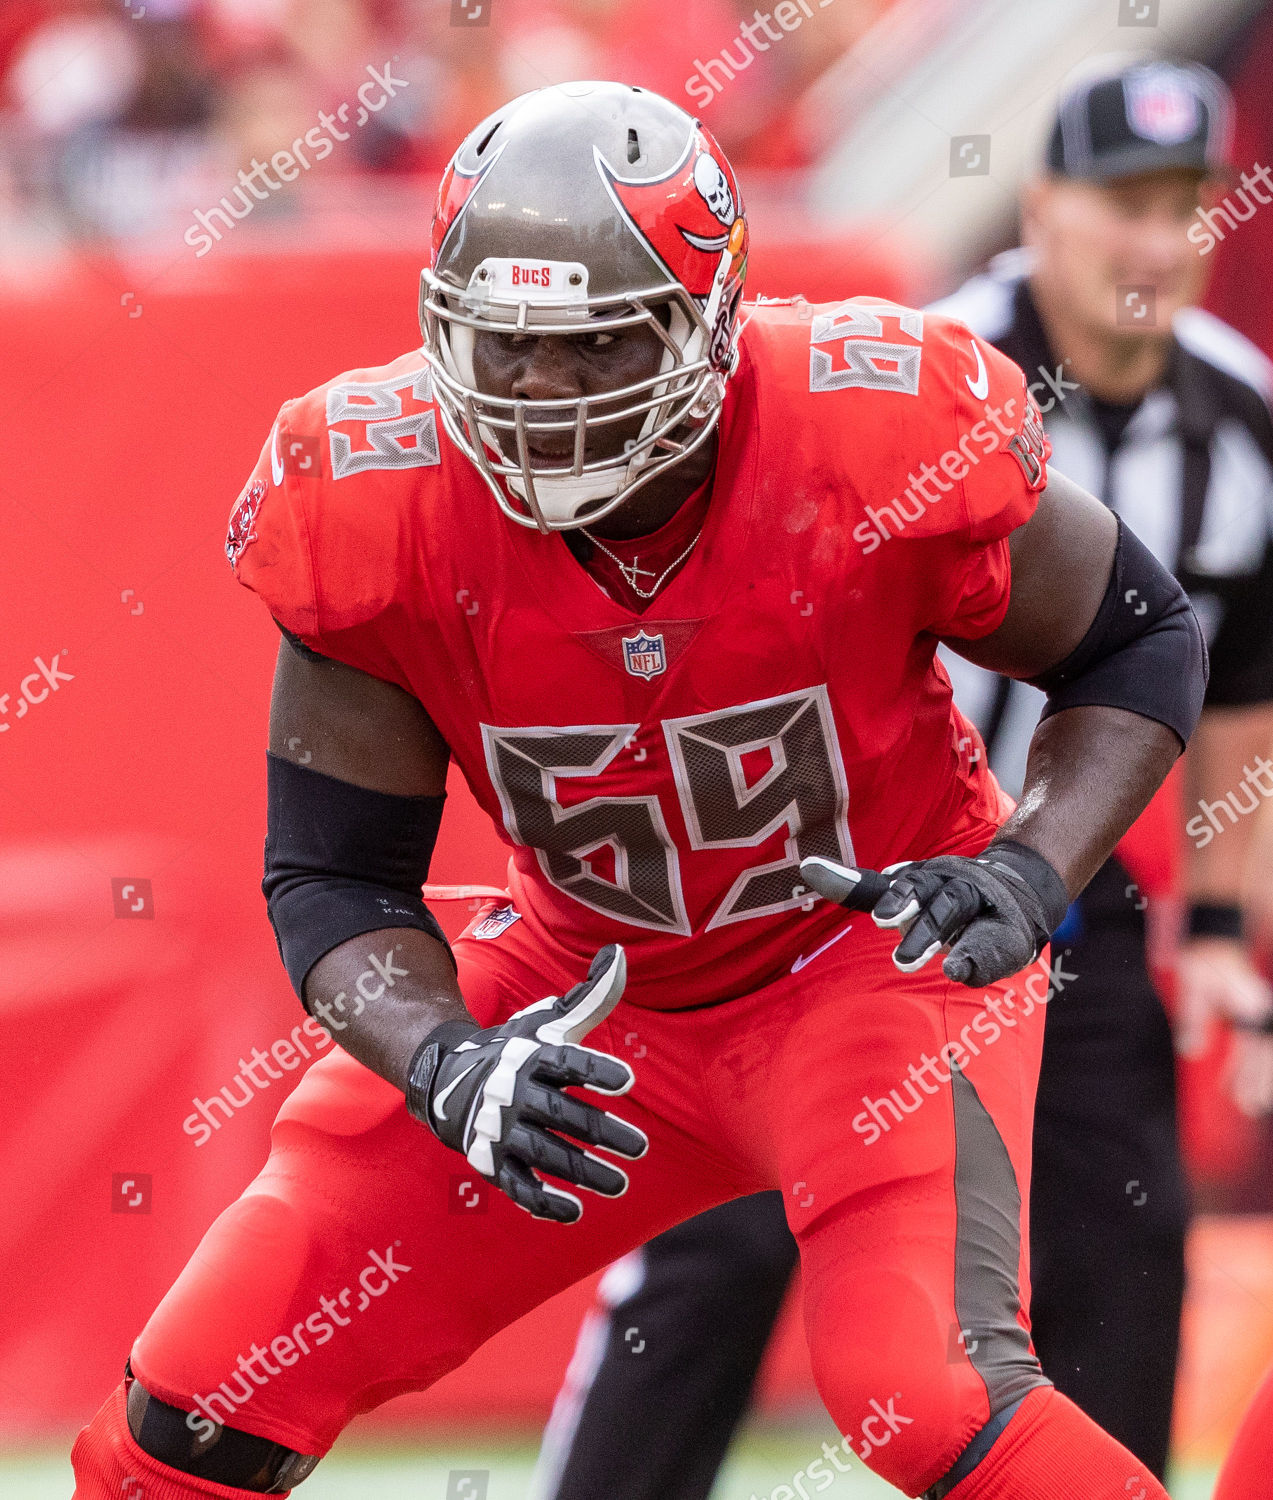 the best attitude 660f2 e3d0c Tampa Bay Buccaneers offensive tackle Demar Dotson Editorial ...